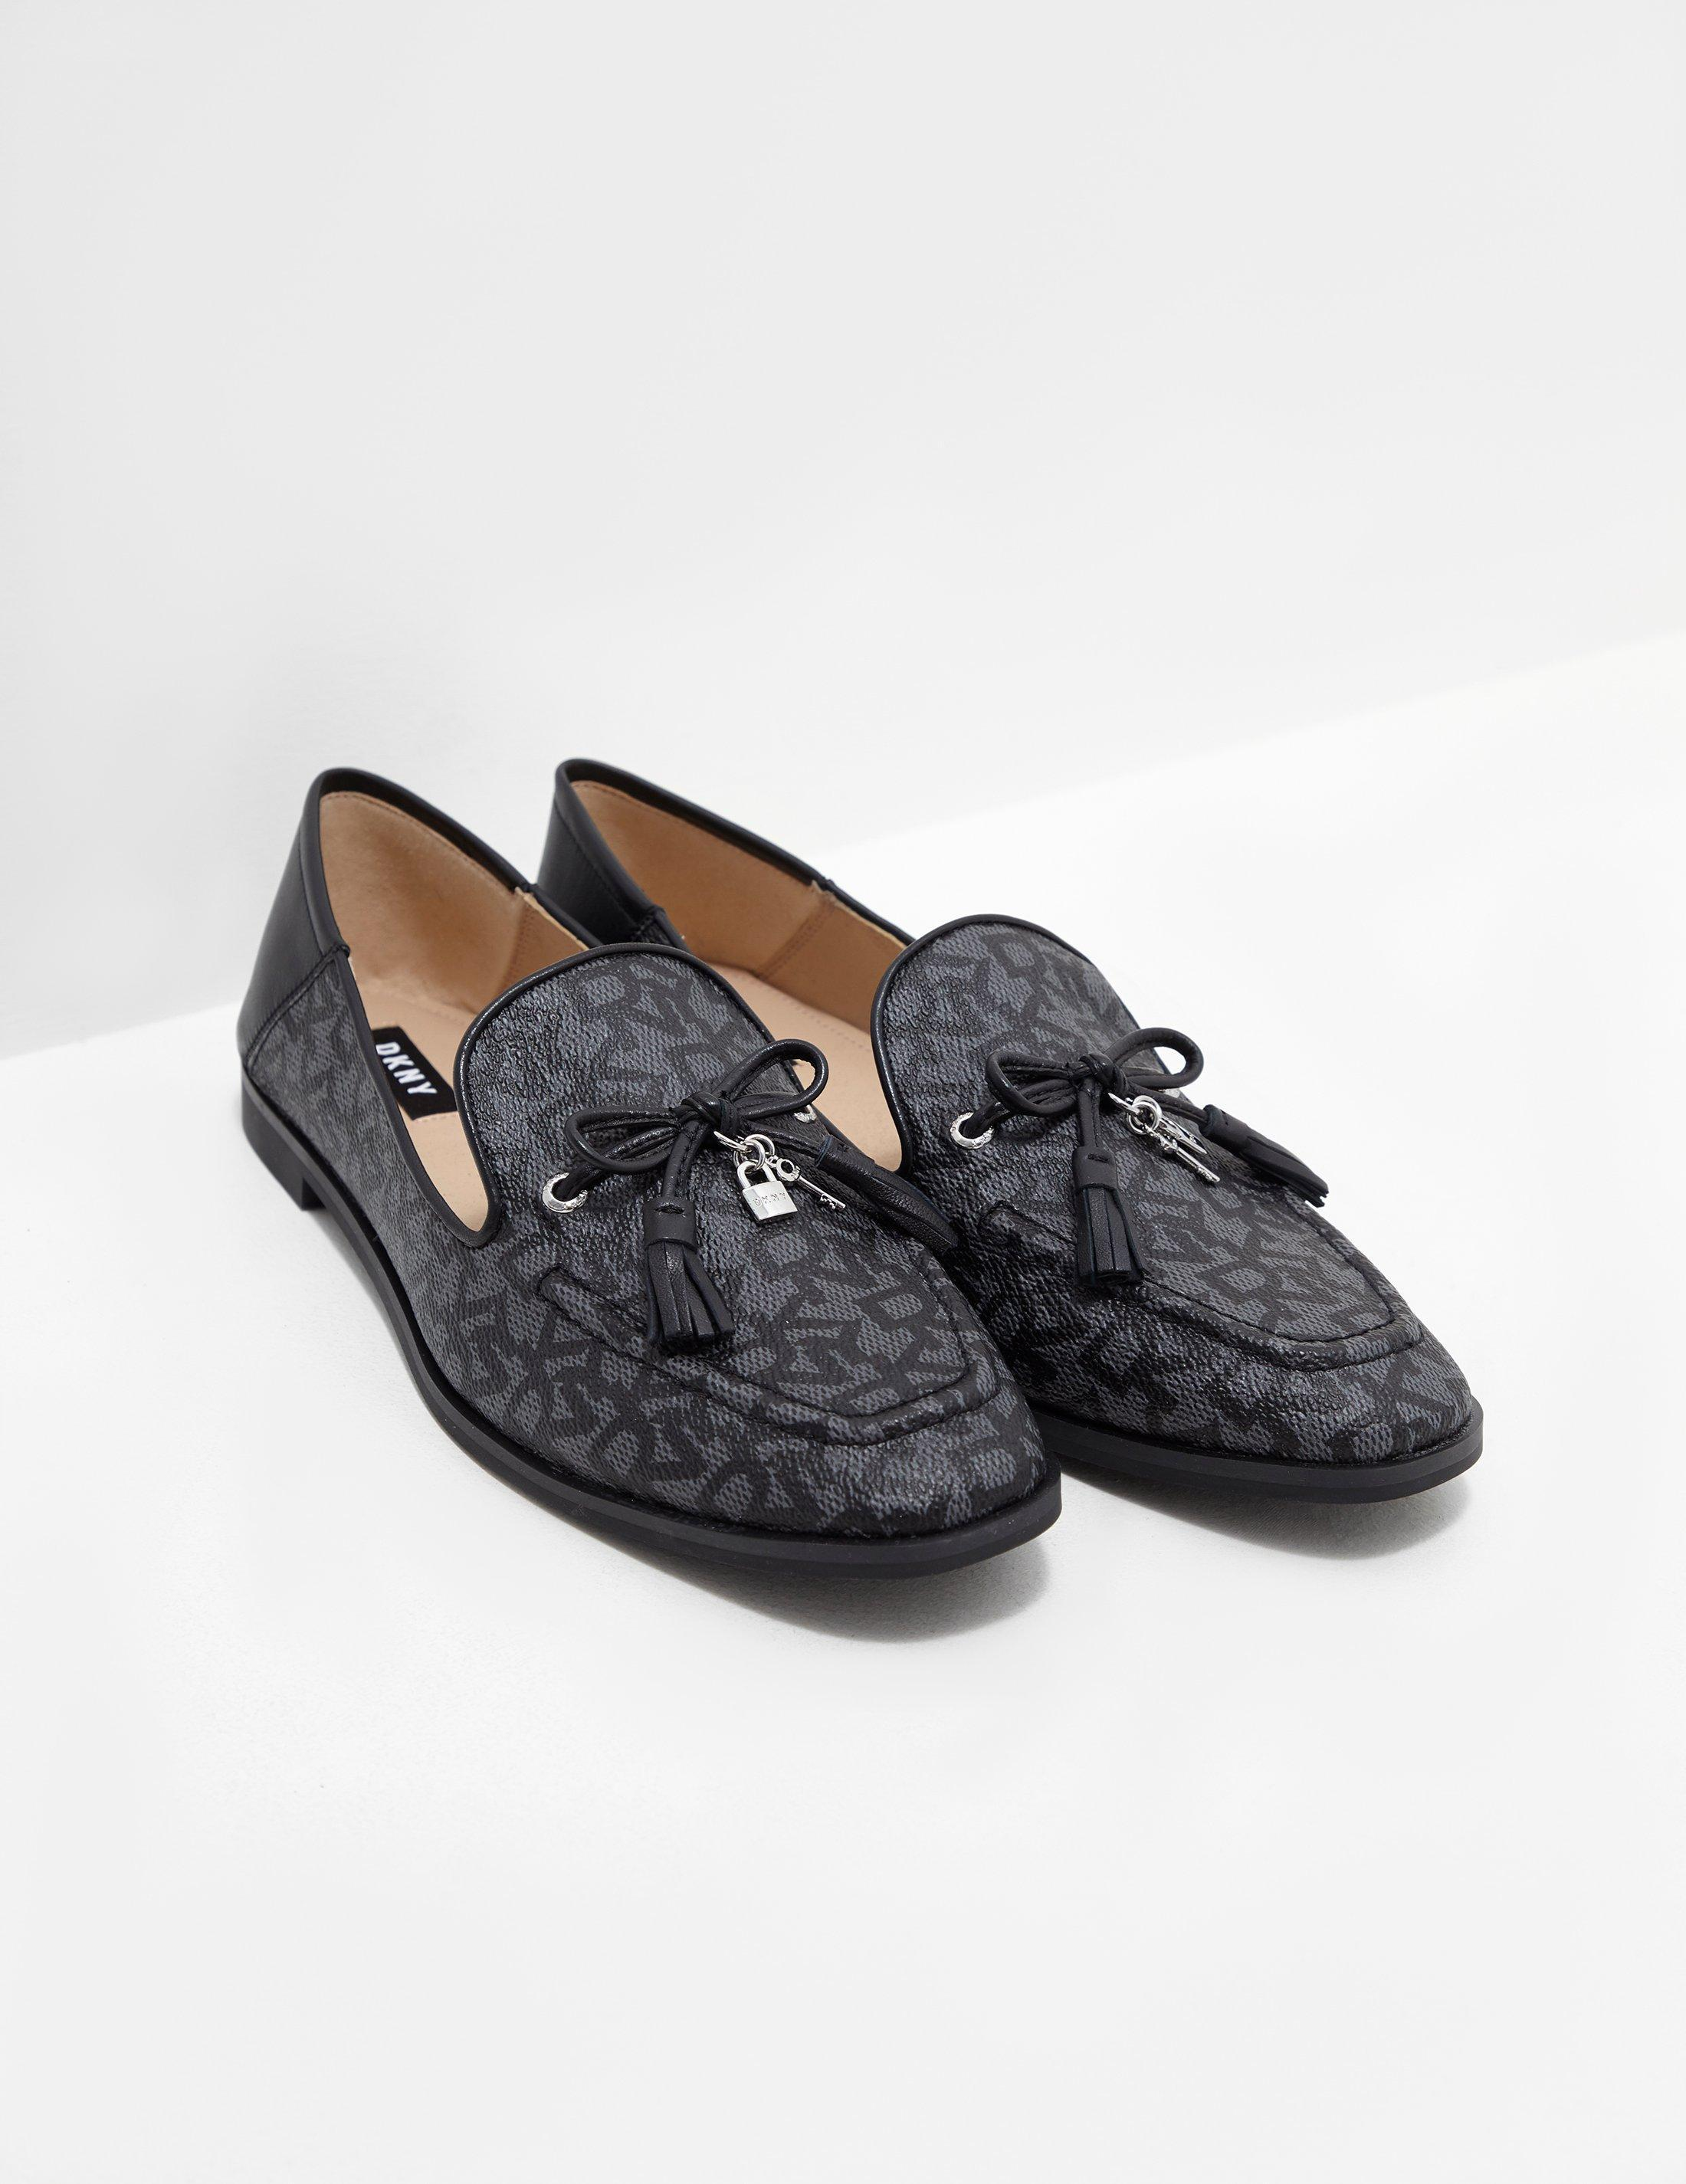 aabccf863 DKNY Laura Slip On Flats - Online Exclusive Black in Black - Lyst